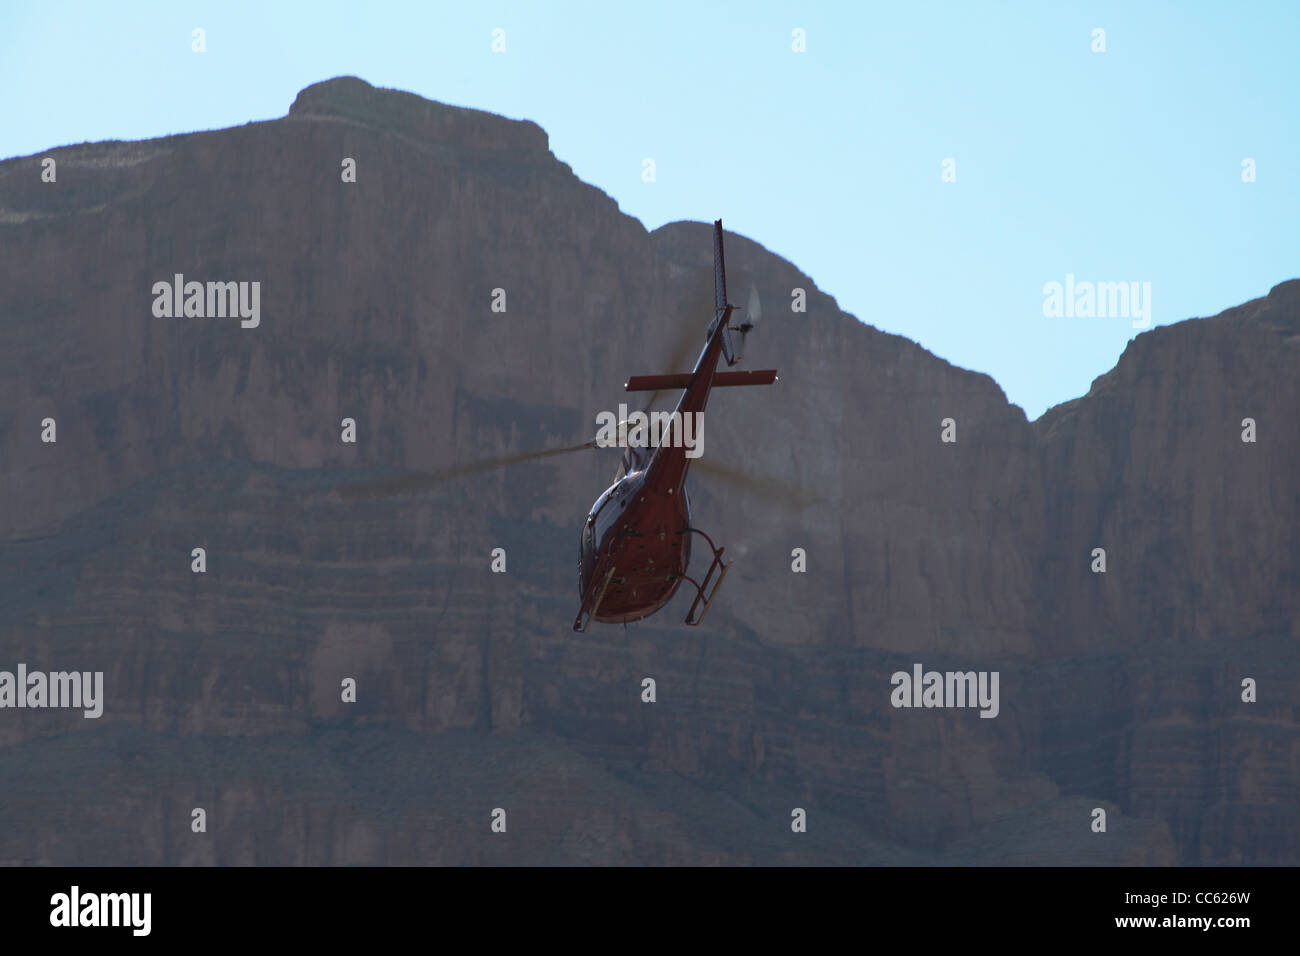 A helicopter in the grand canyon - Stock Image